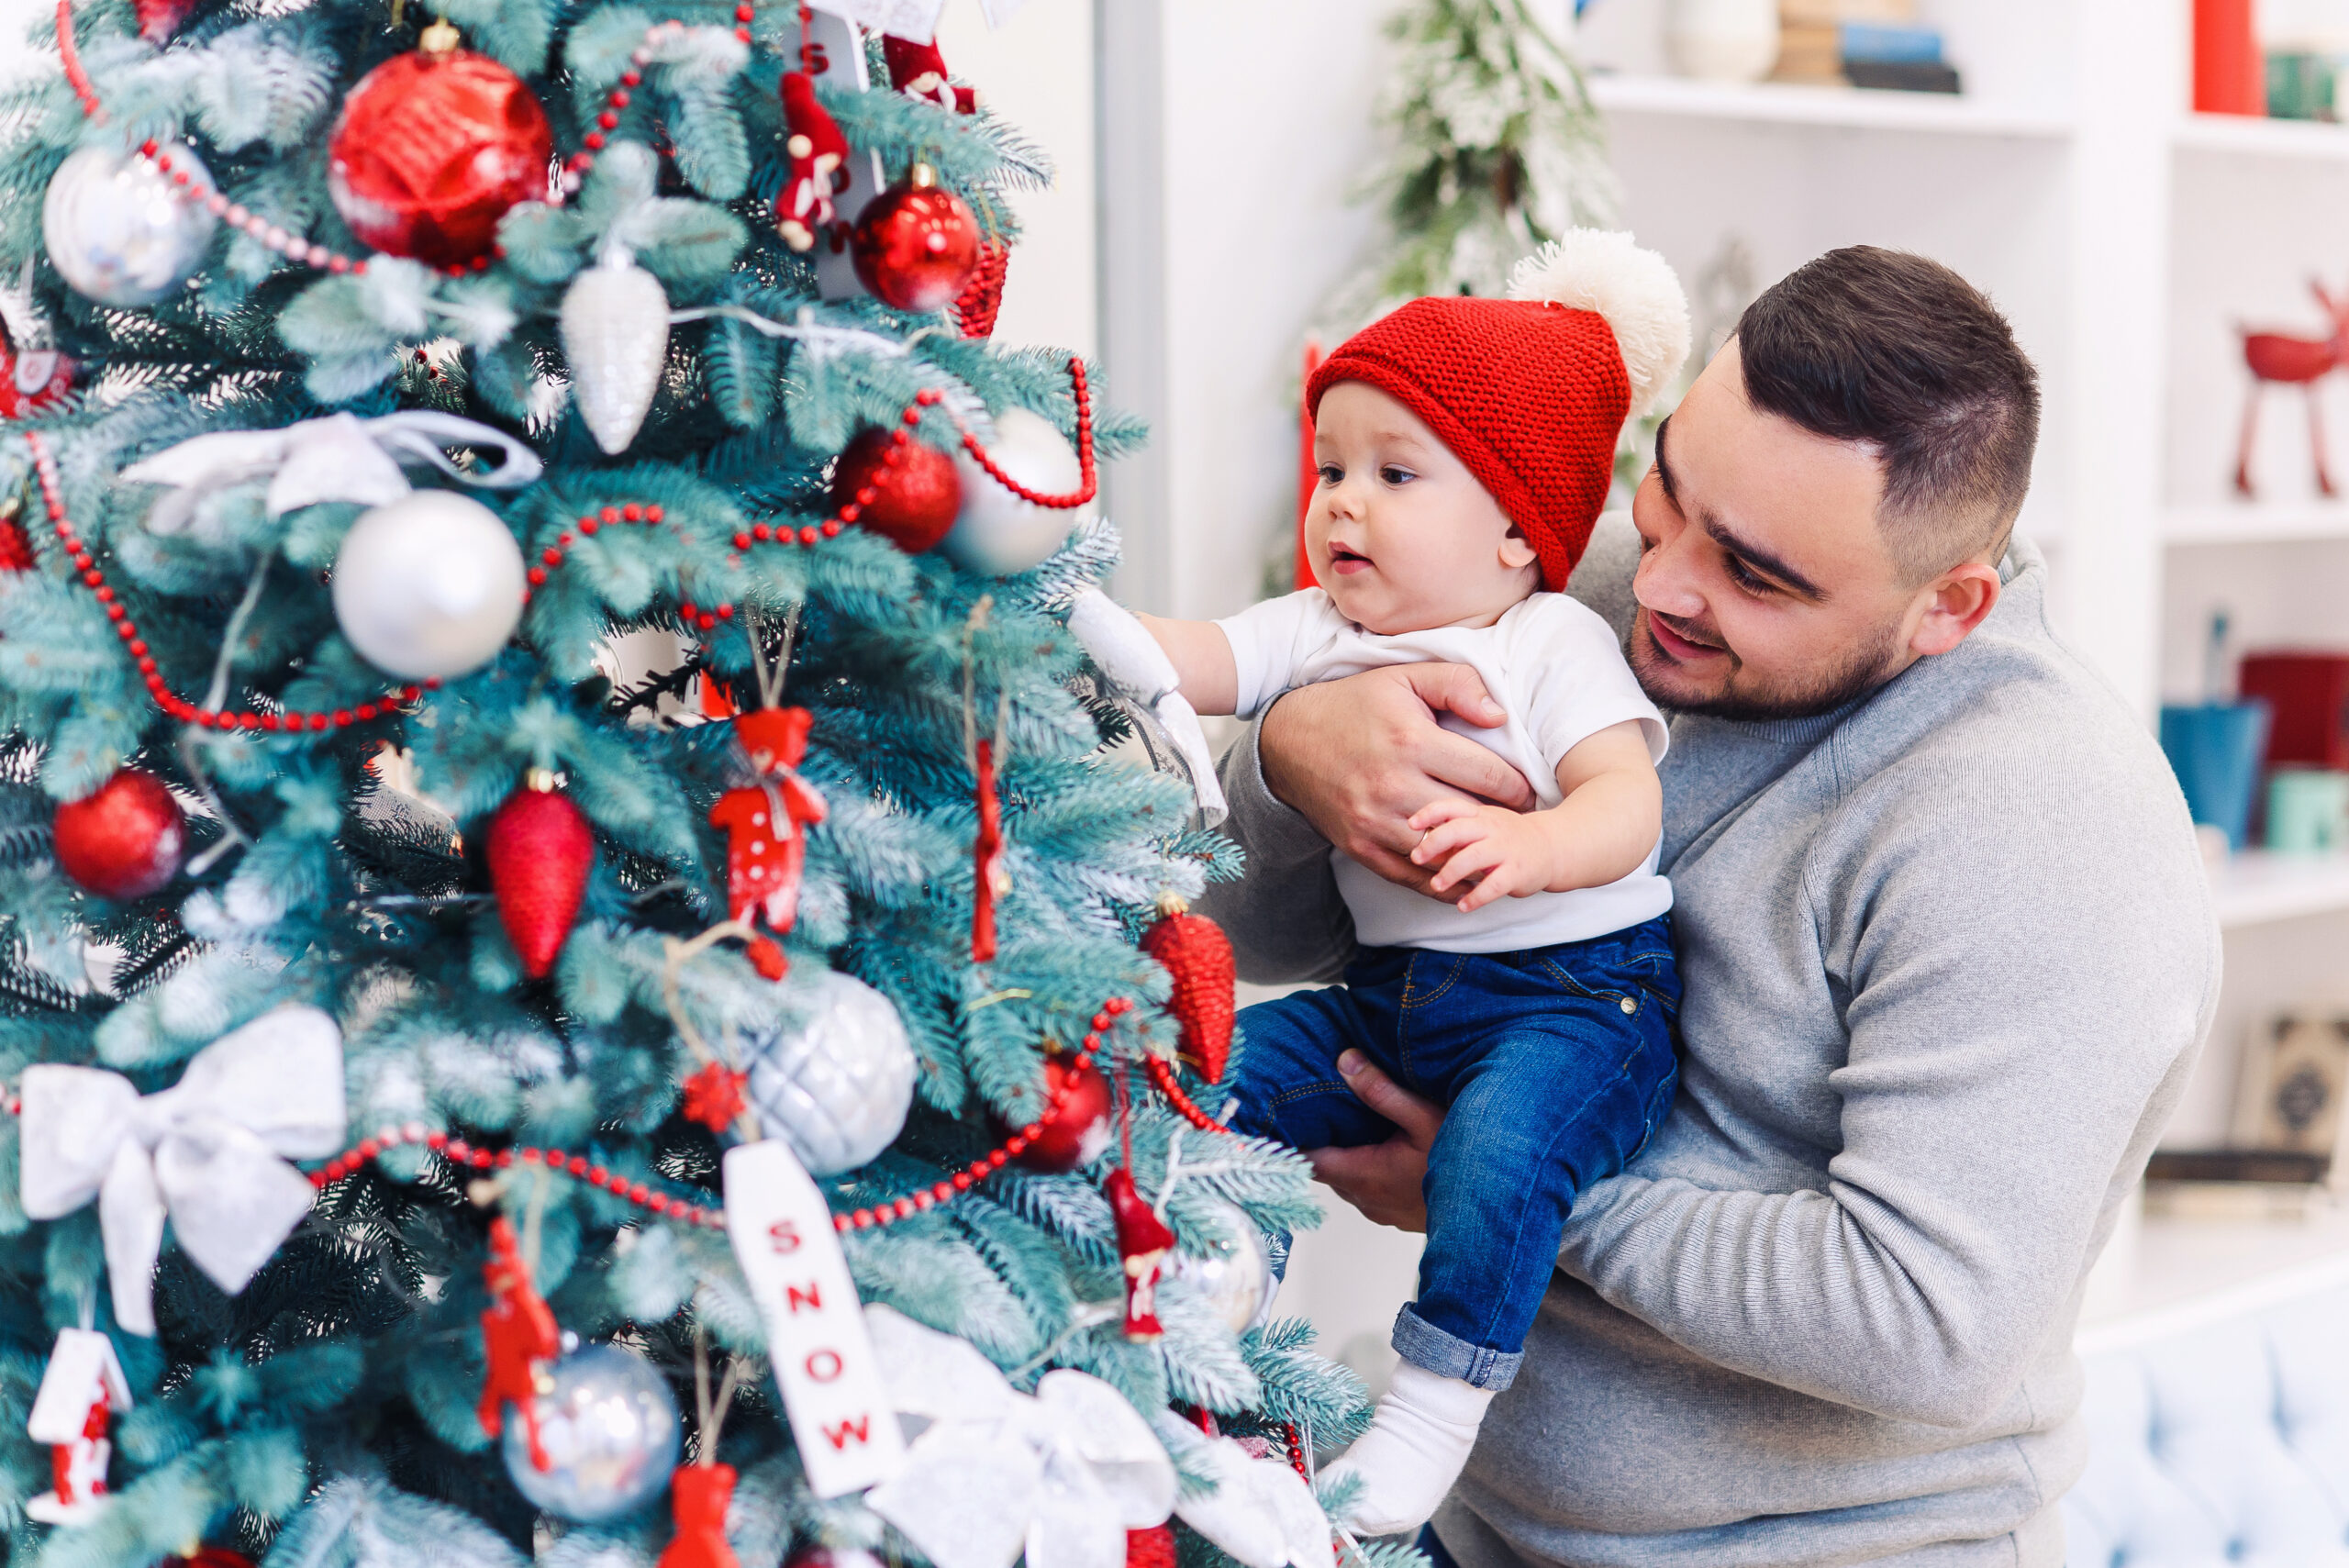 Child Custody Tips During the Holiday Season